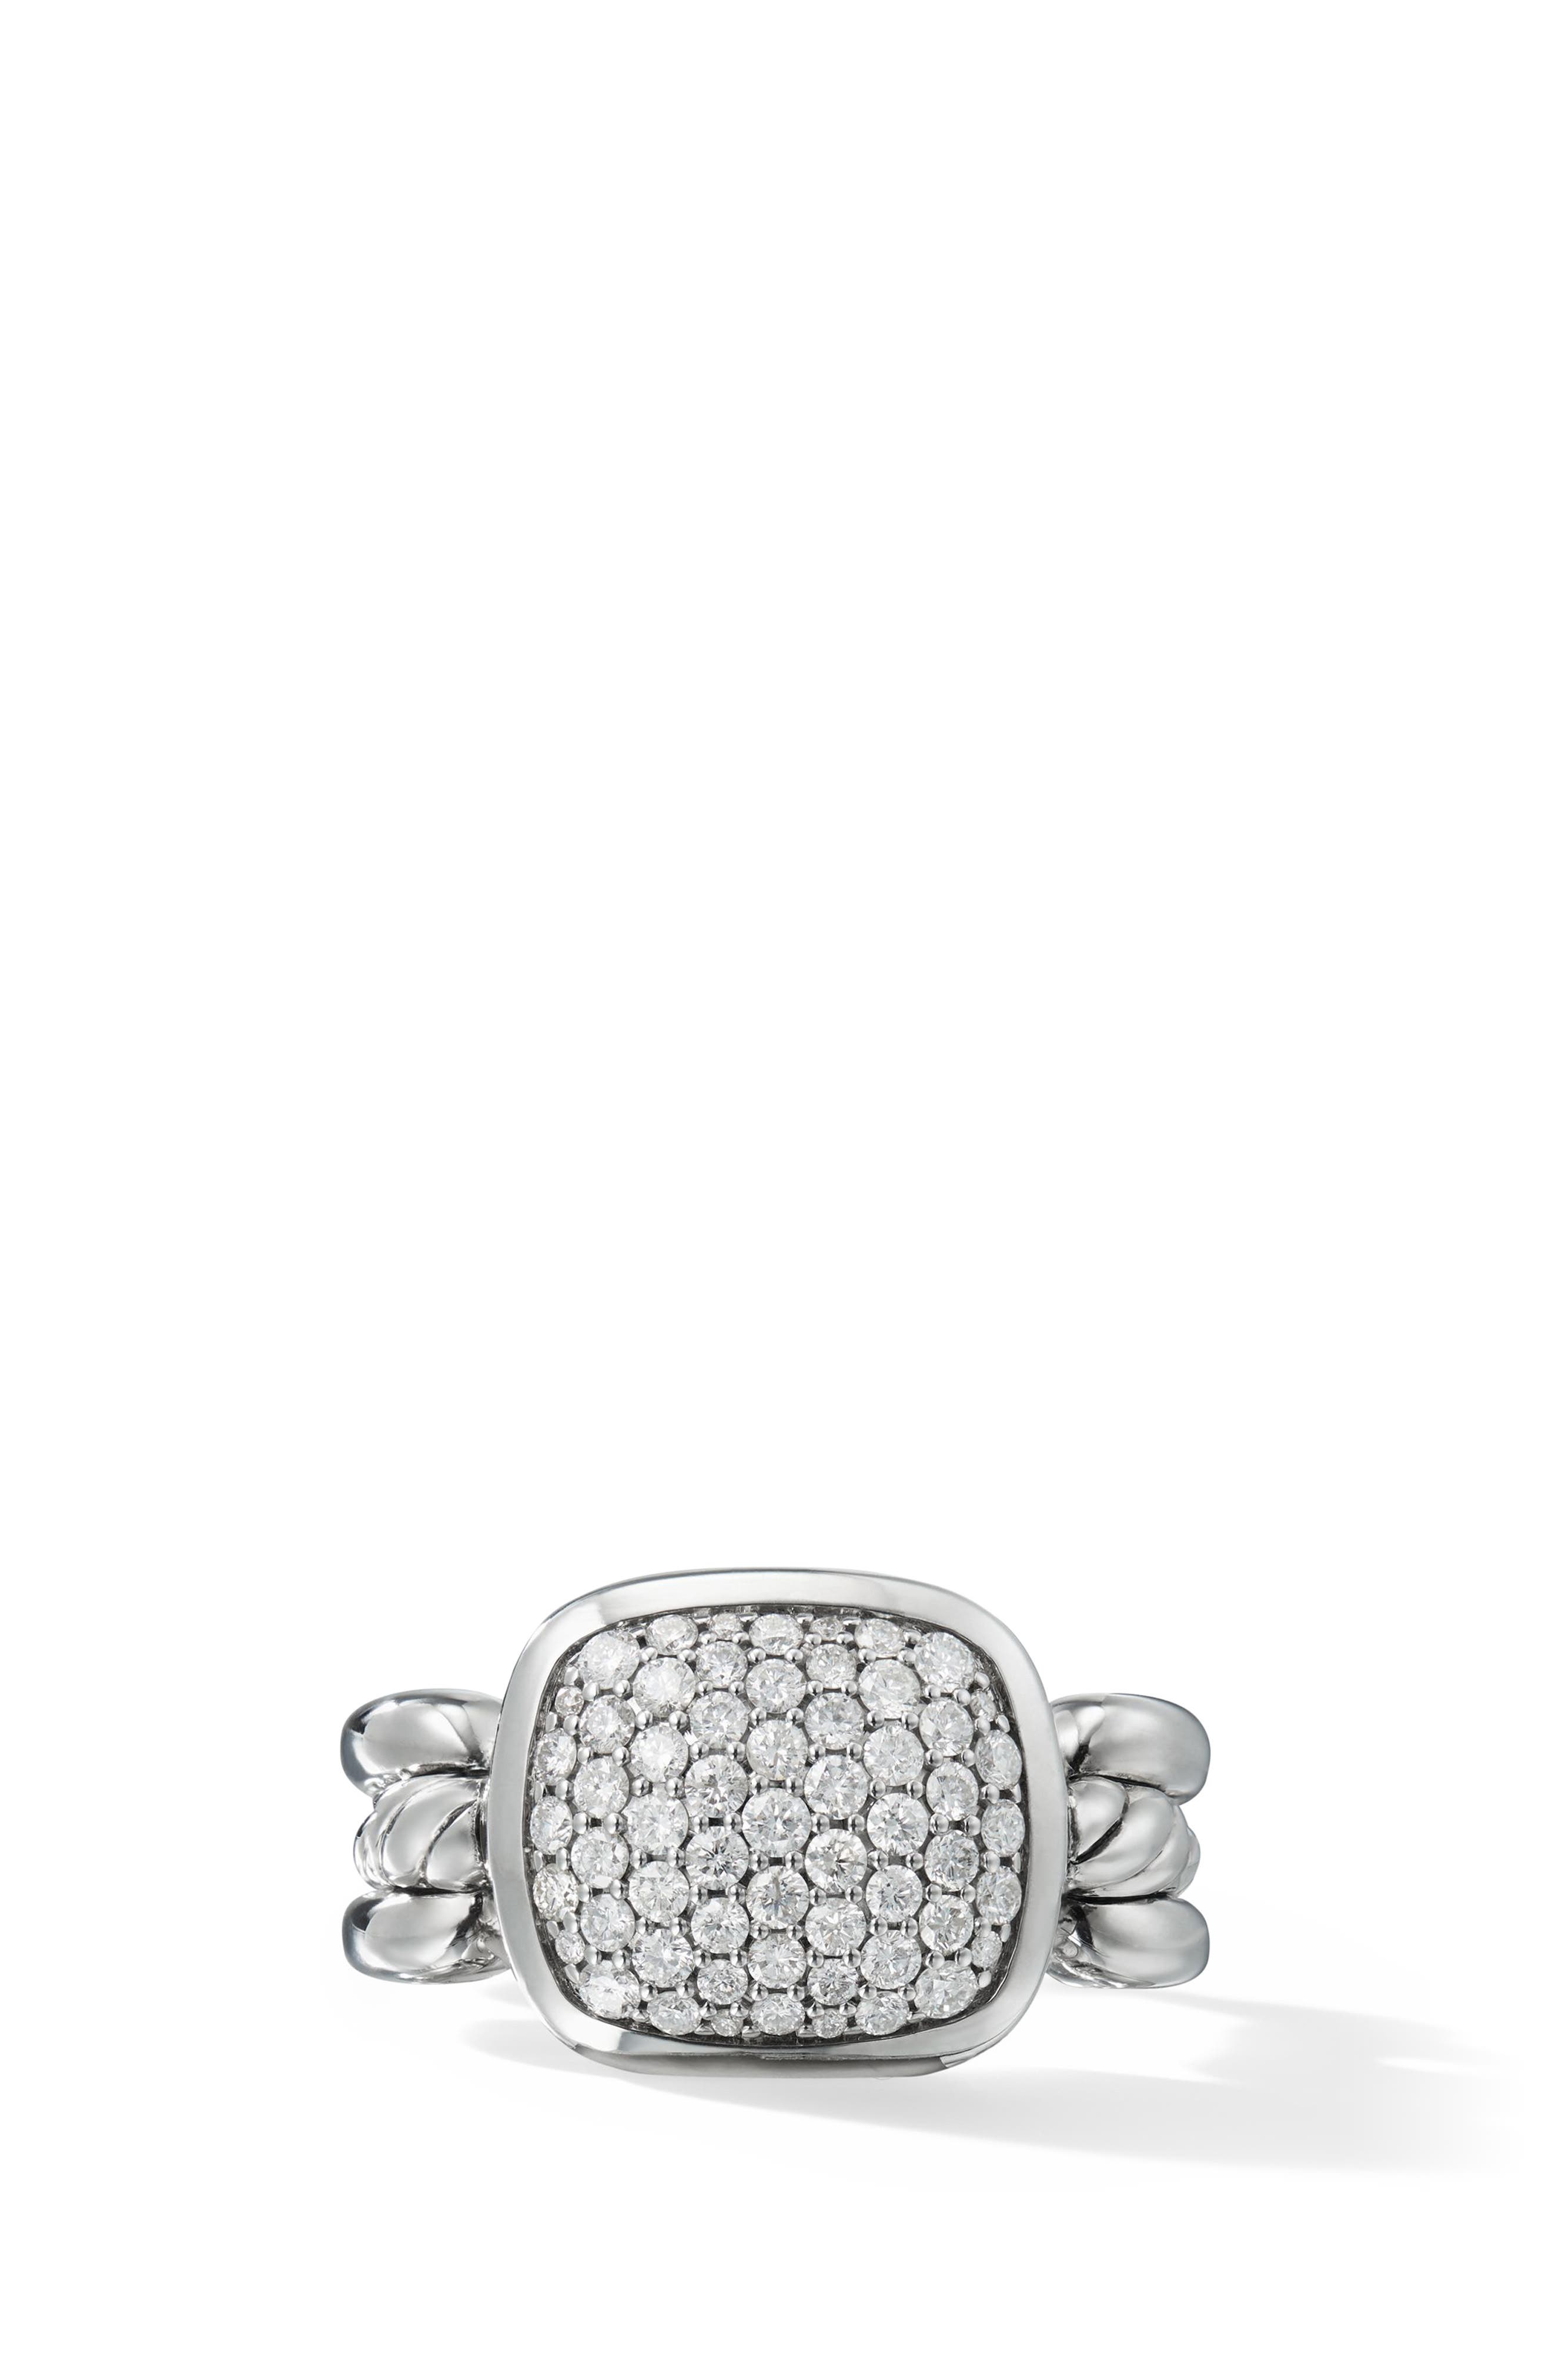 Wellesley Link Ring with Diamonds,                             Main thumbnail 1, color,                             SILVER/ DIAMOND